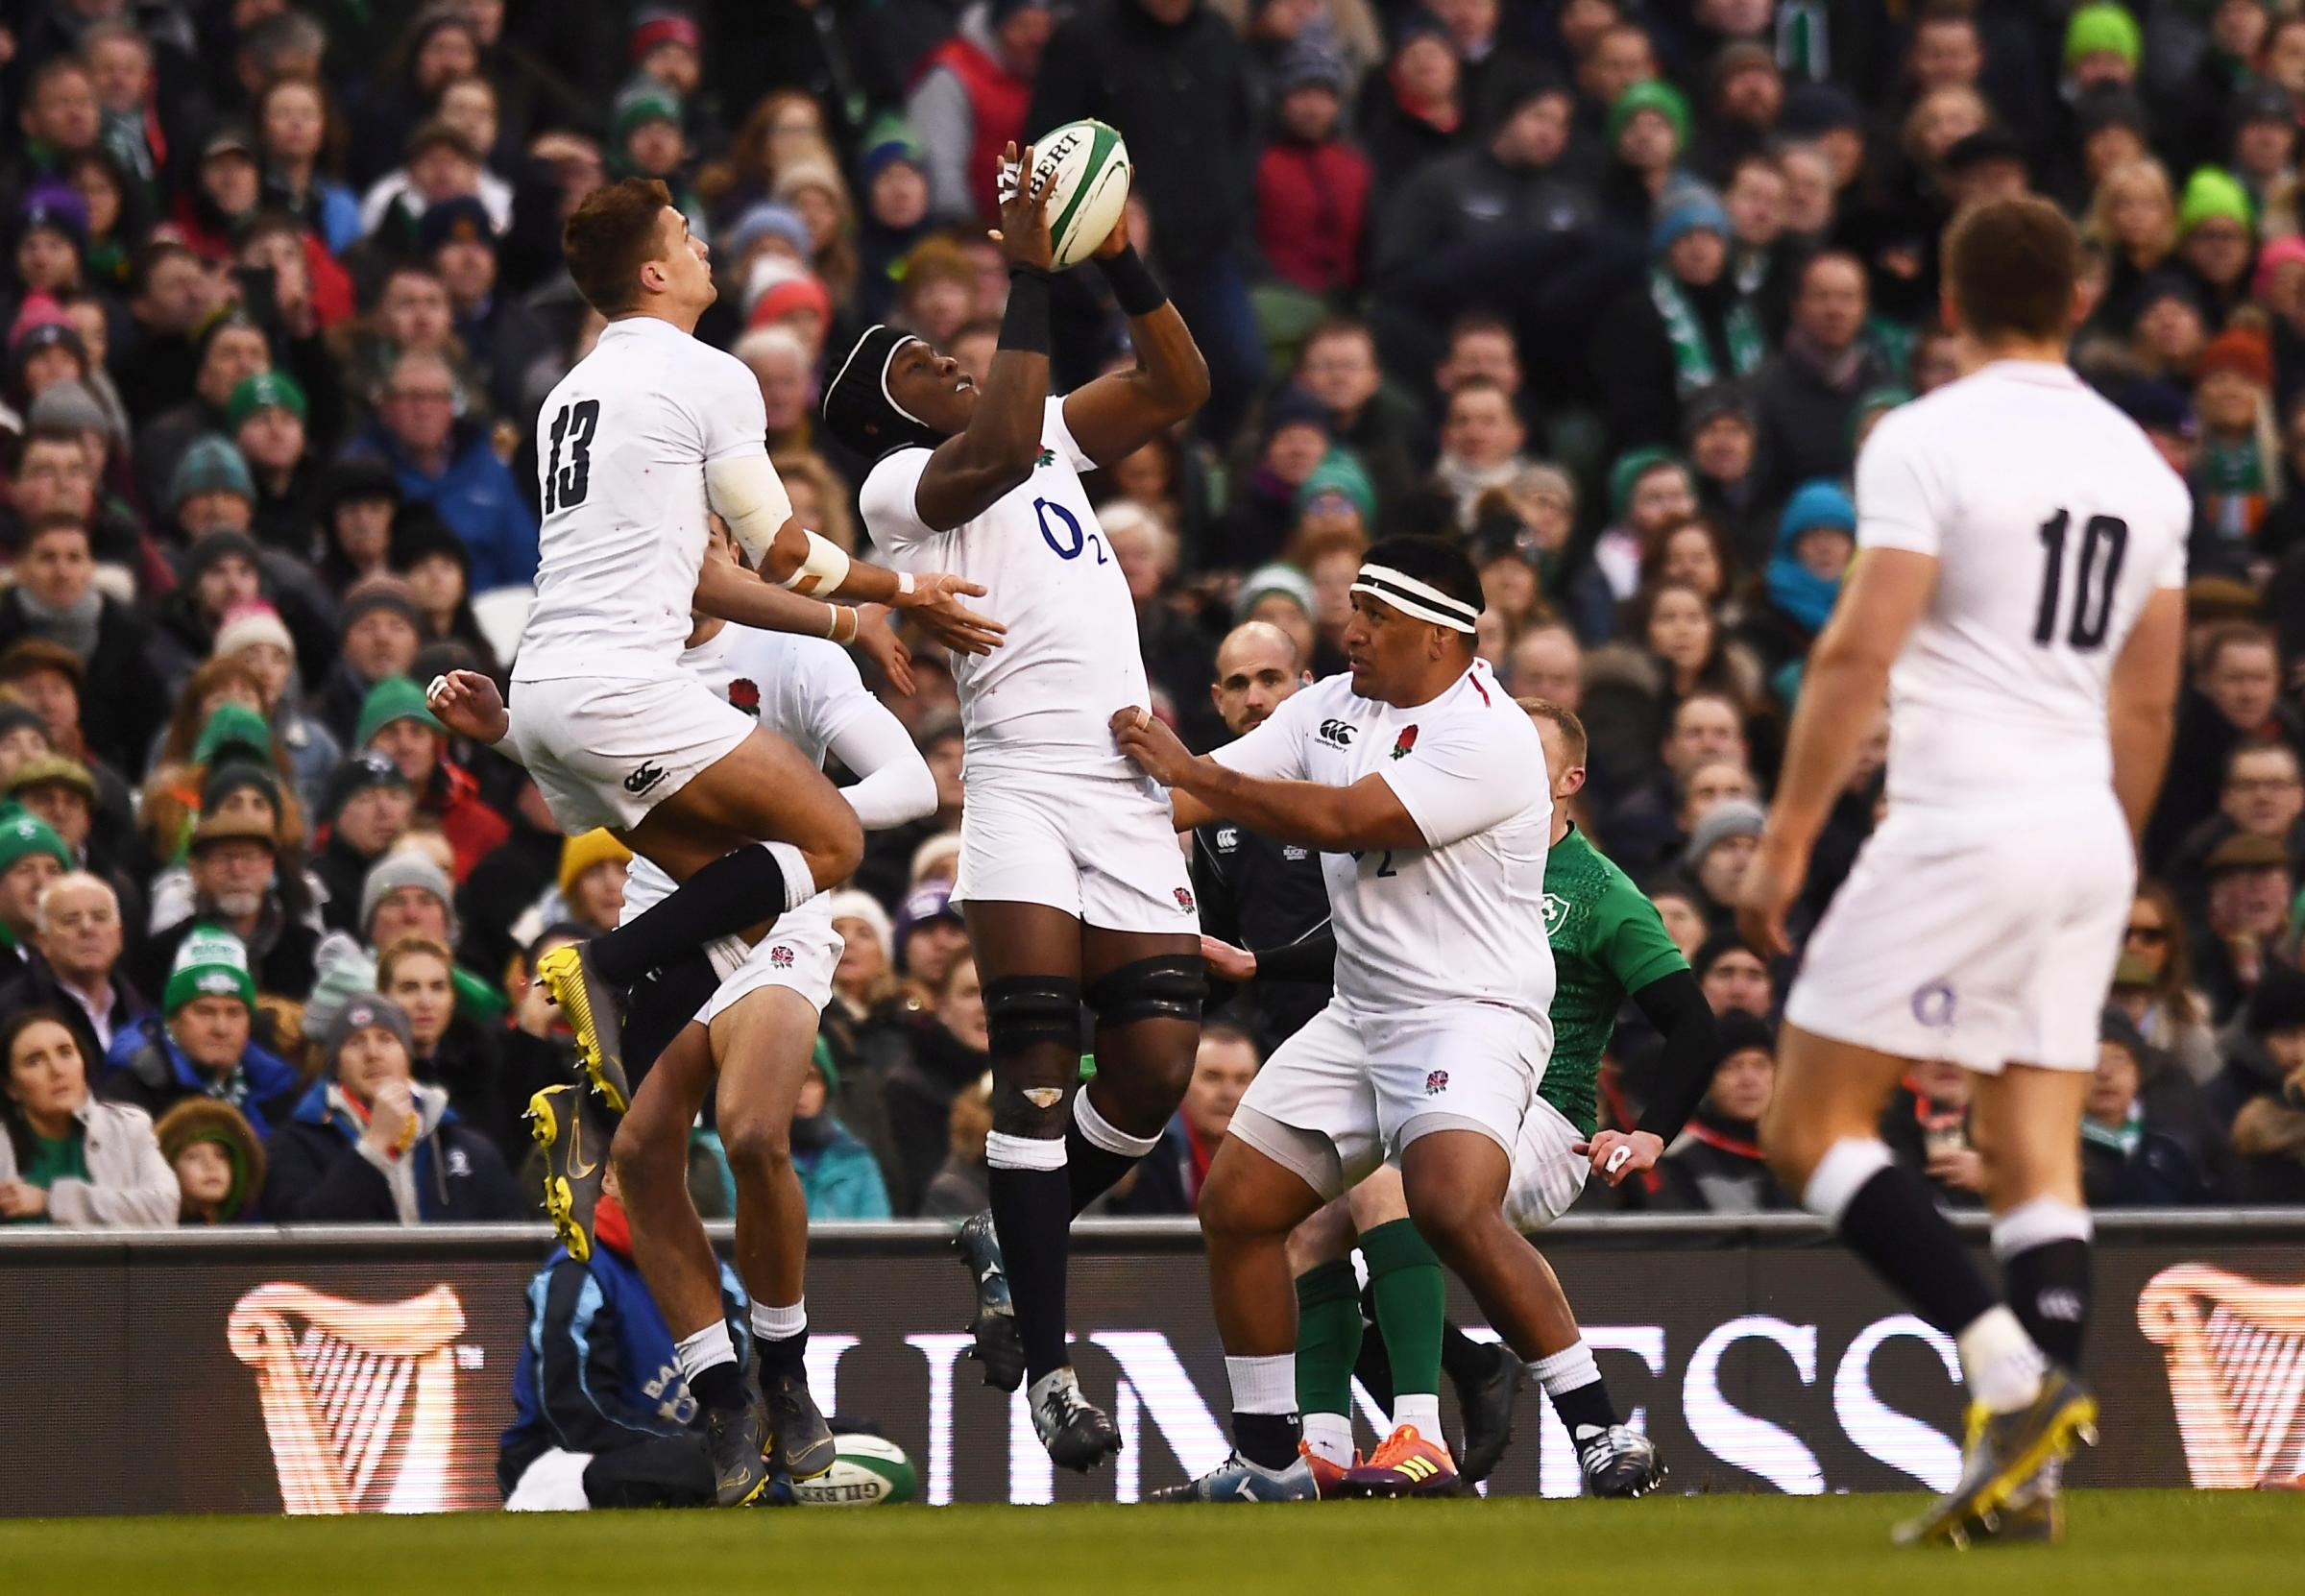 Safe hands: Maro Itoje claims the ball before sustaining his injury in England's win over Ireland. Picture: Action Images